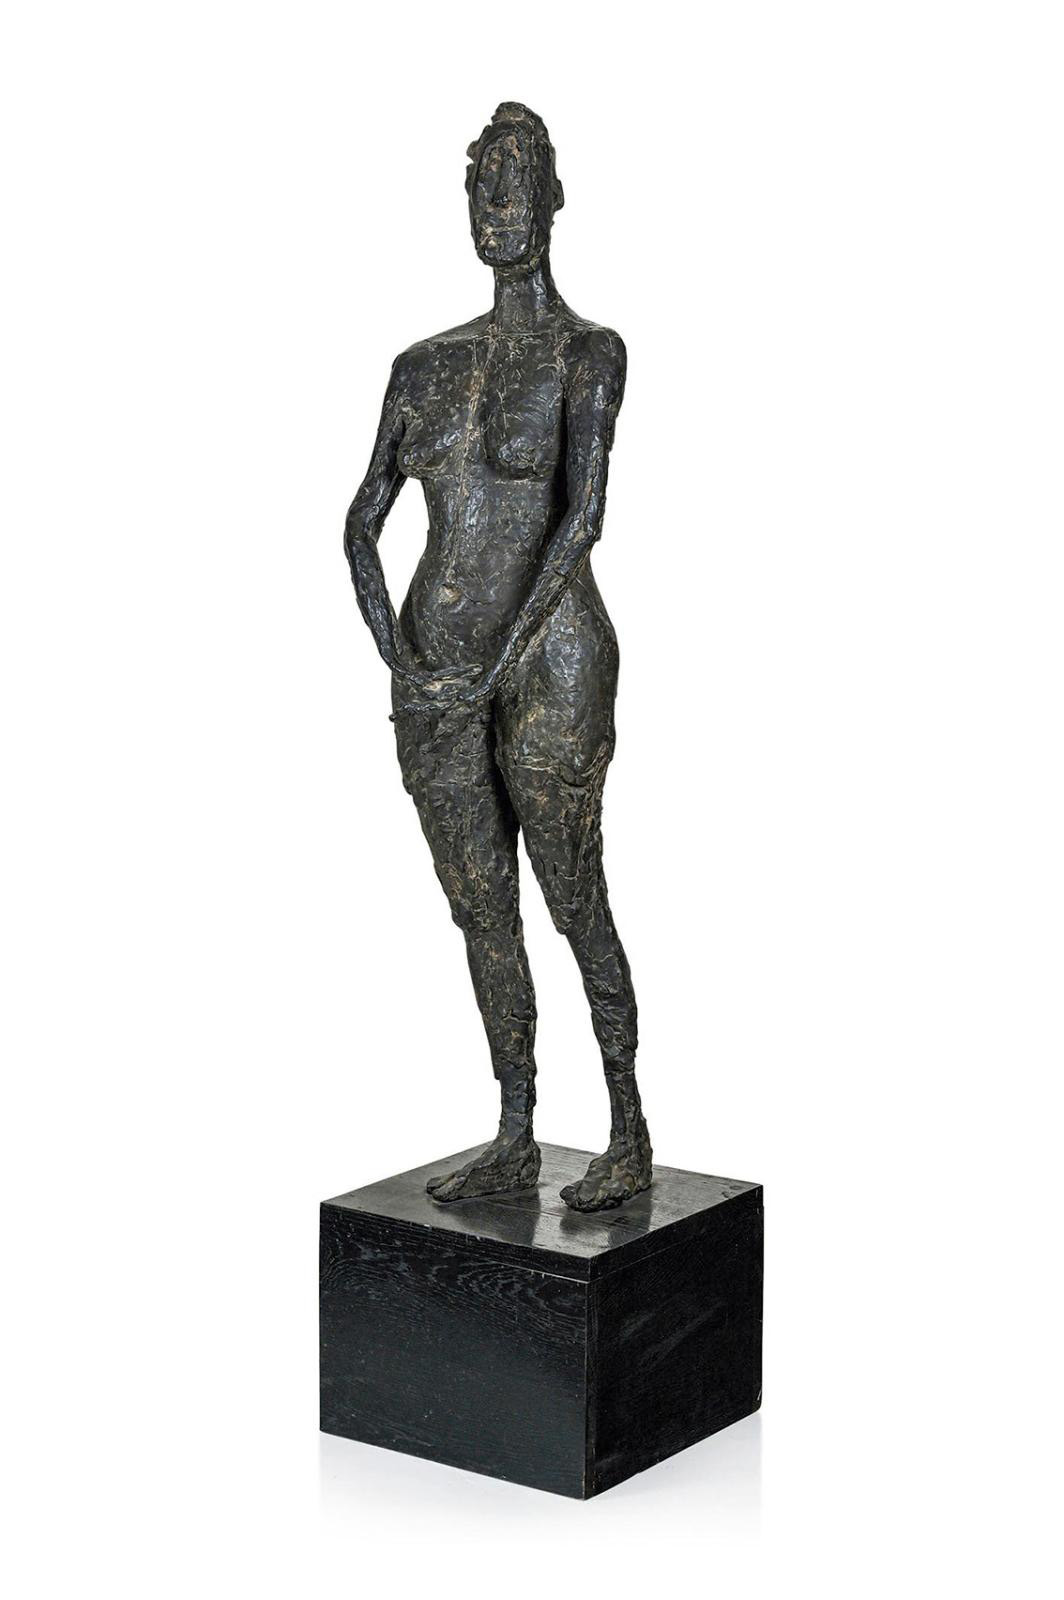 The Creuzevaults' relationship with sculptor Germaine Richier (1902-1959) is well known and has already been the focus of articles in thes